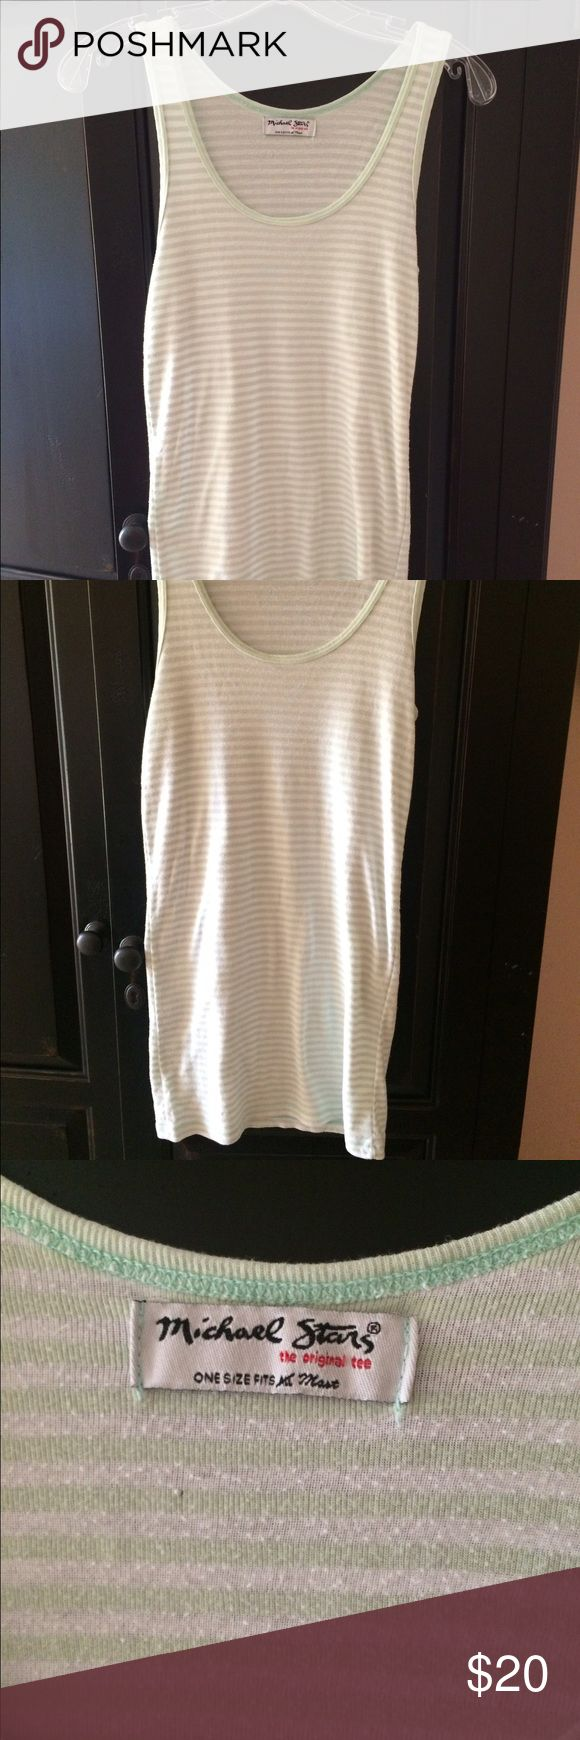 """Michael Stars long Tank top Michael Stars mint green and white striped tank. Great condition, long enough to layer or wear by itself. Michael stars is """"one size fits most"""" but I am anywhere between a L- M and it fits me great. Soft fabric, and just a very versatile piece. Michael Stars Tops Tank Tops"""